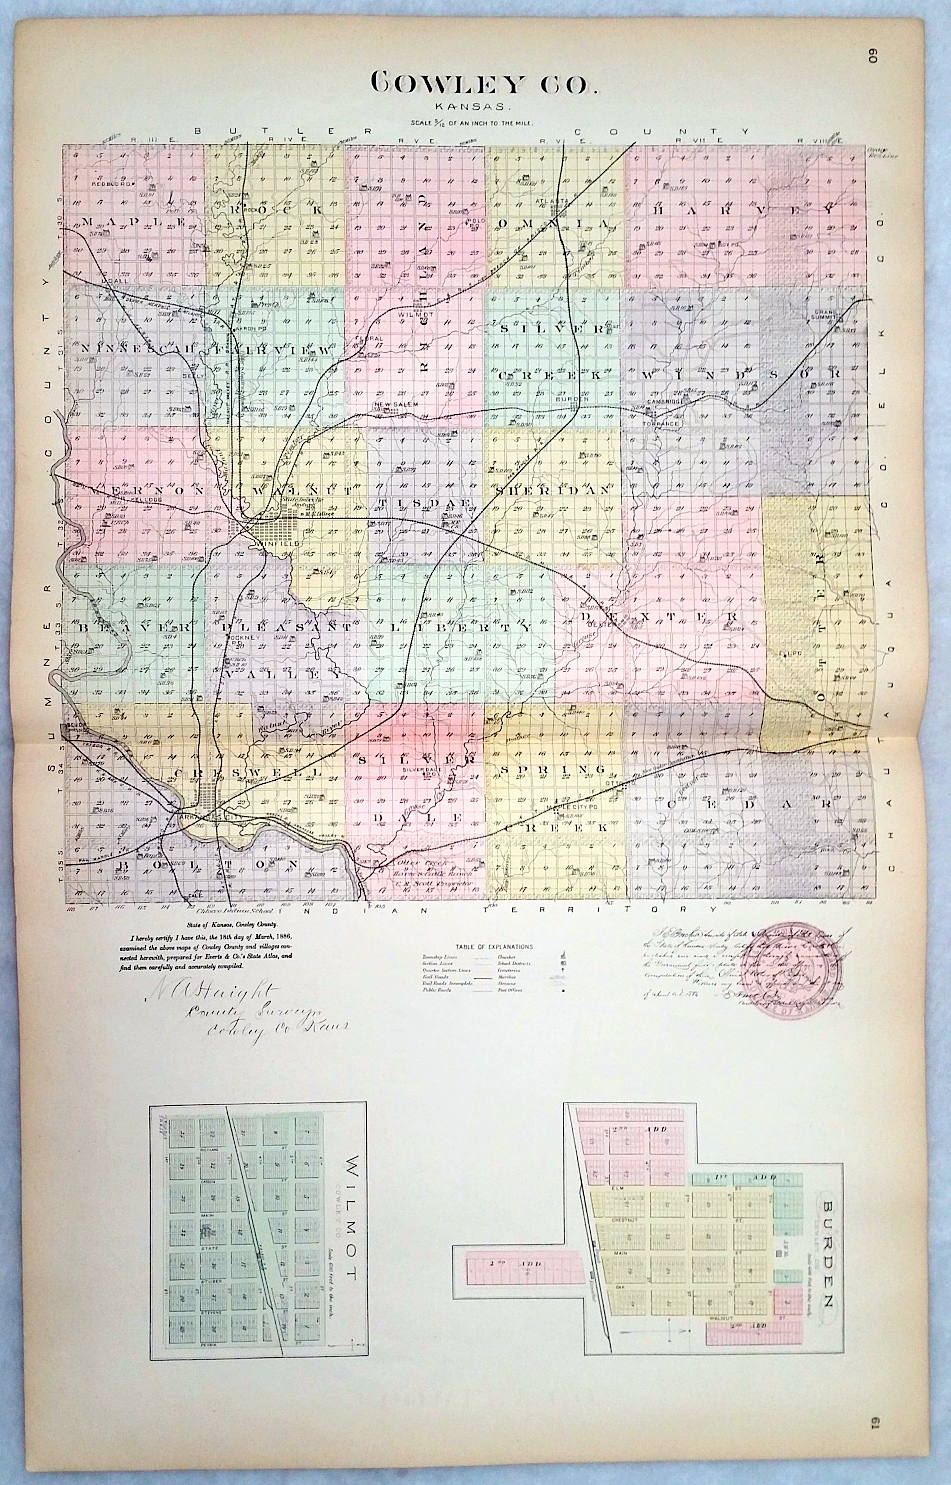 Image for [Map] Cowley County, Kansas, with Burden, & Wilmot of Cowley Co. [backed with] Cheney, Mulvane, Andale, Colwich, Garden Plains, Oatville, Greenwich, Bayneville, & Maize of Sedgwick Co., Freeport or Harper Co., And Mulvane and Milan of Sumner Co.